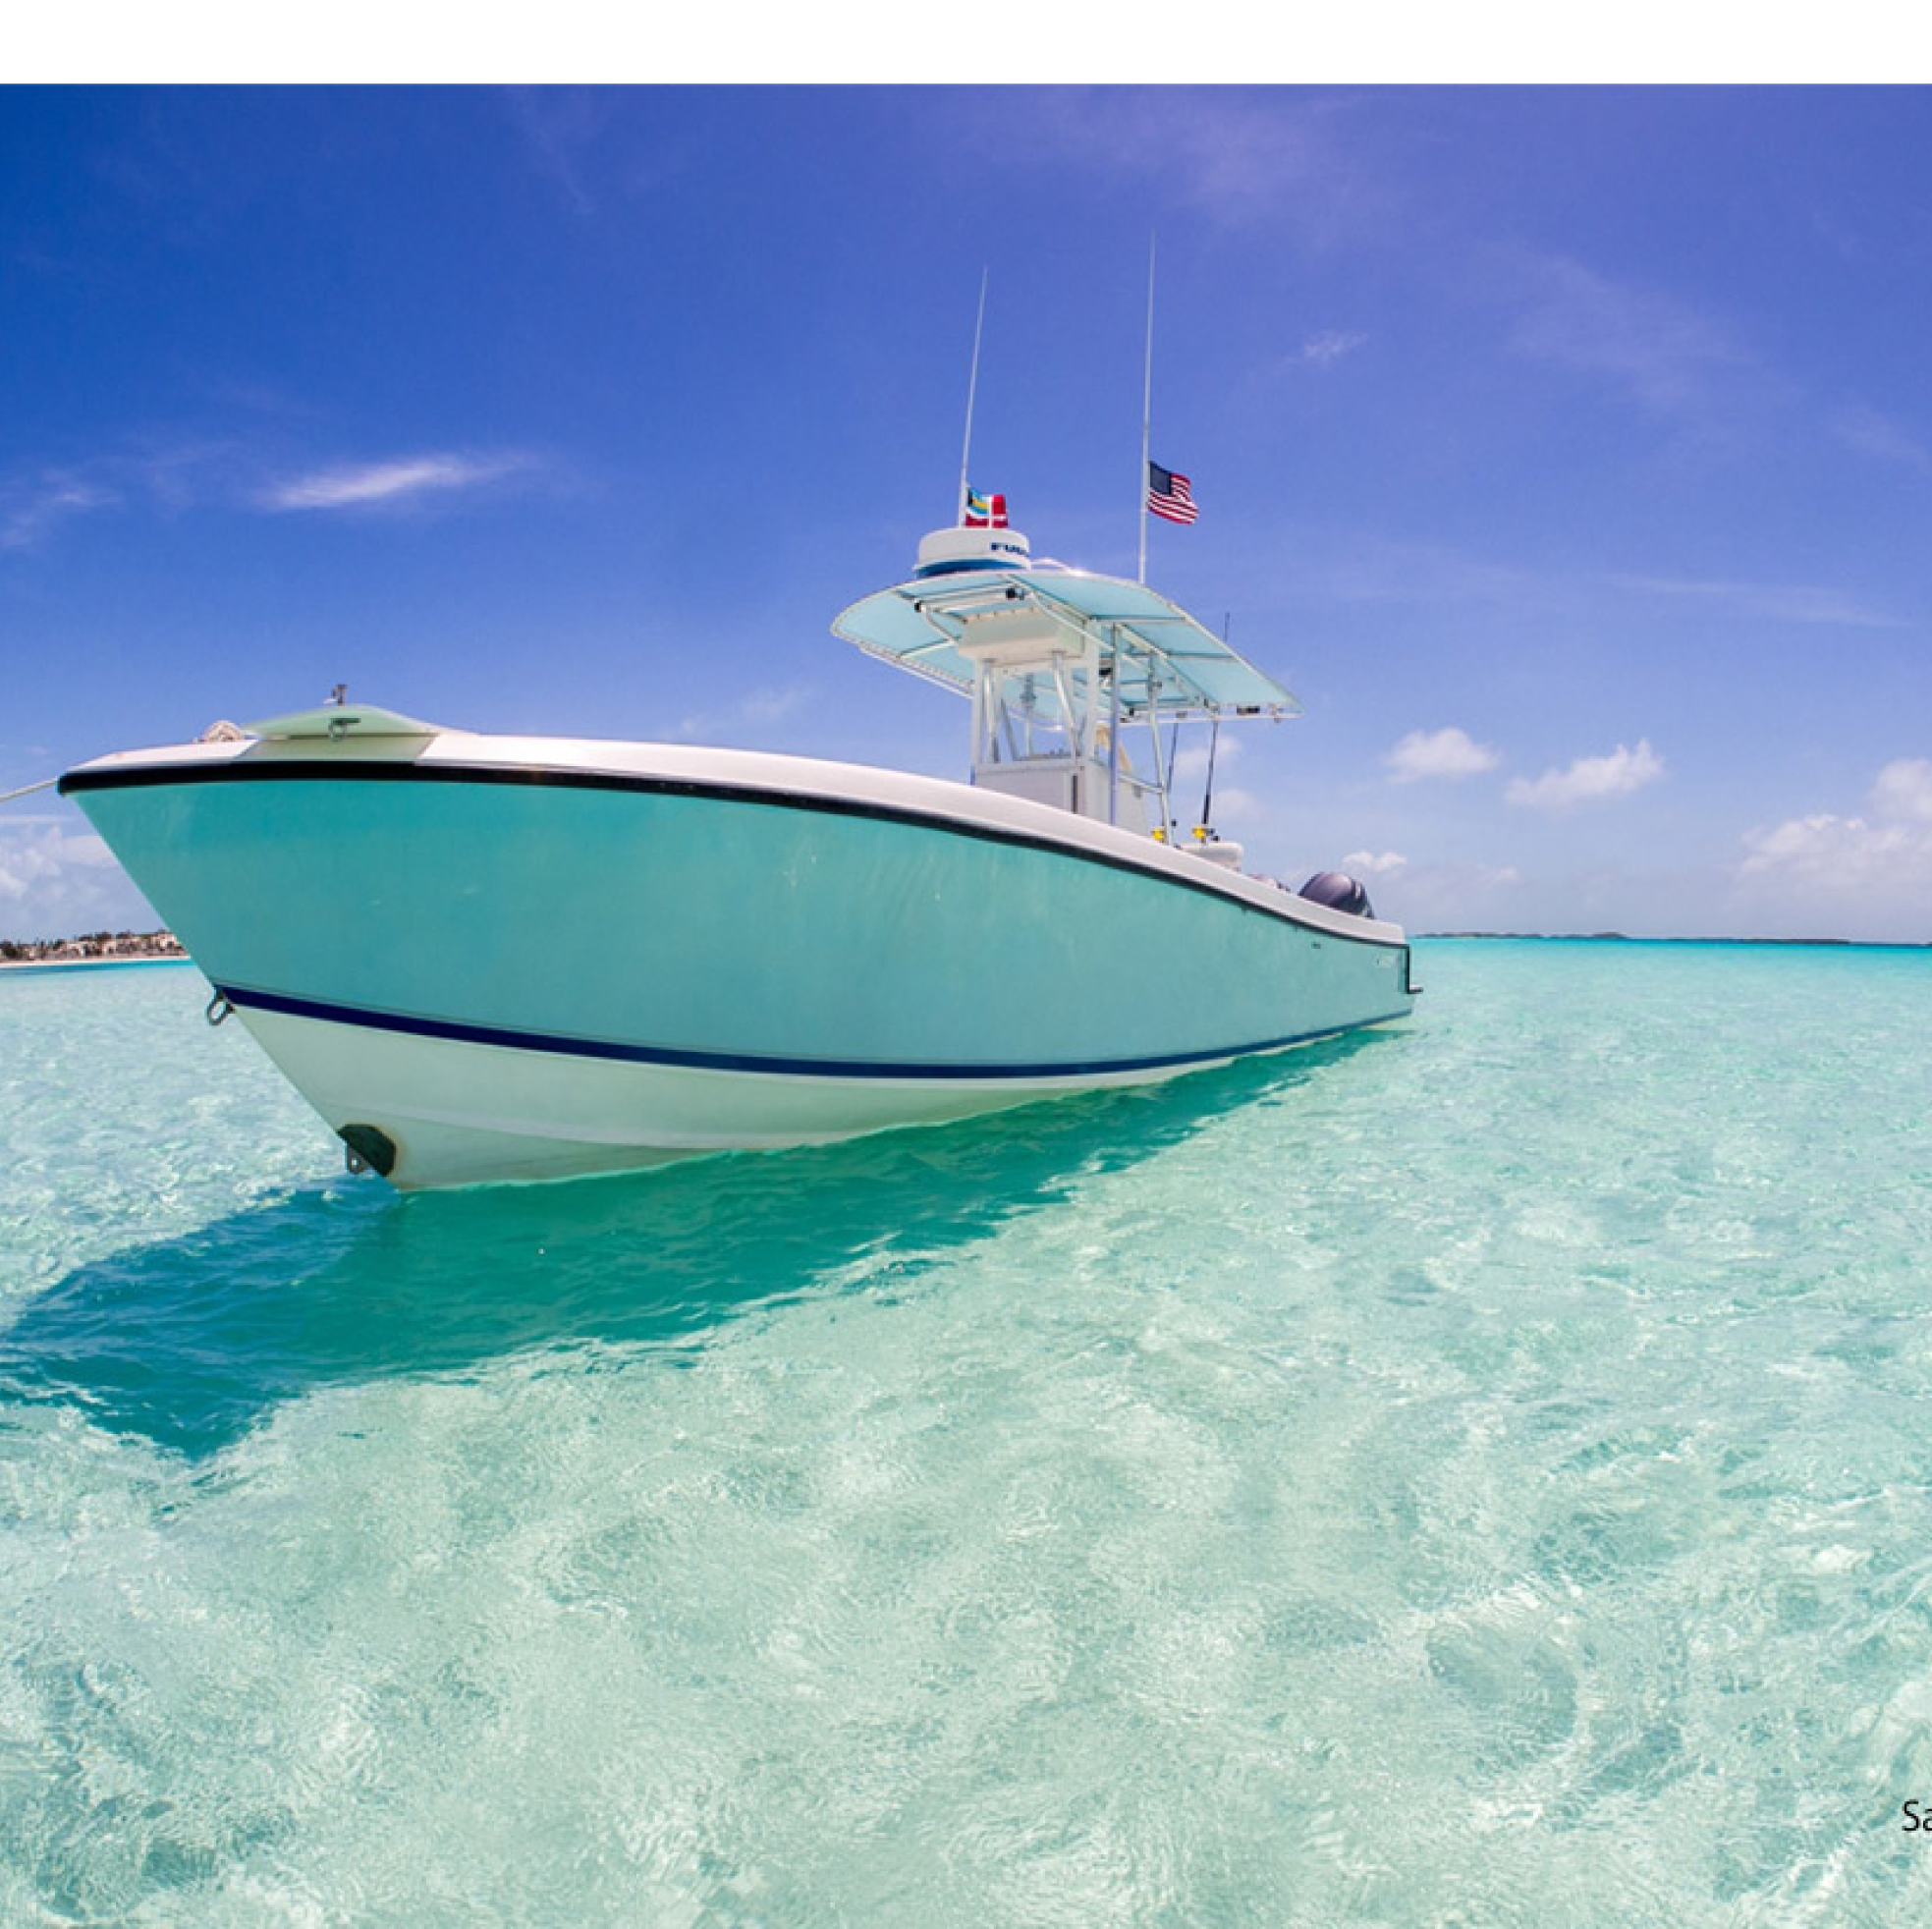 The Best Place To Look For Jetskis For Sale